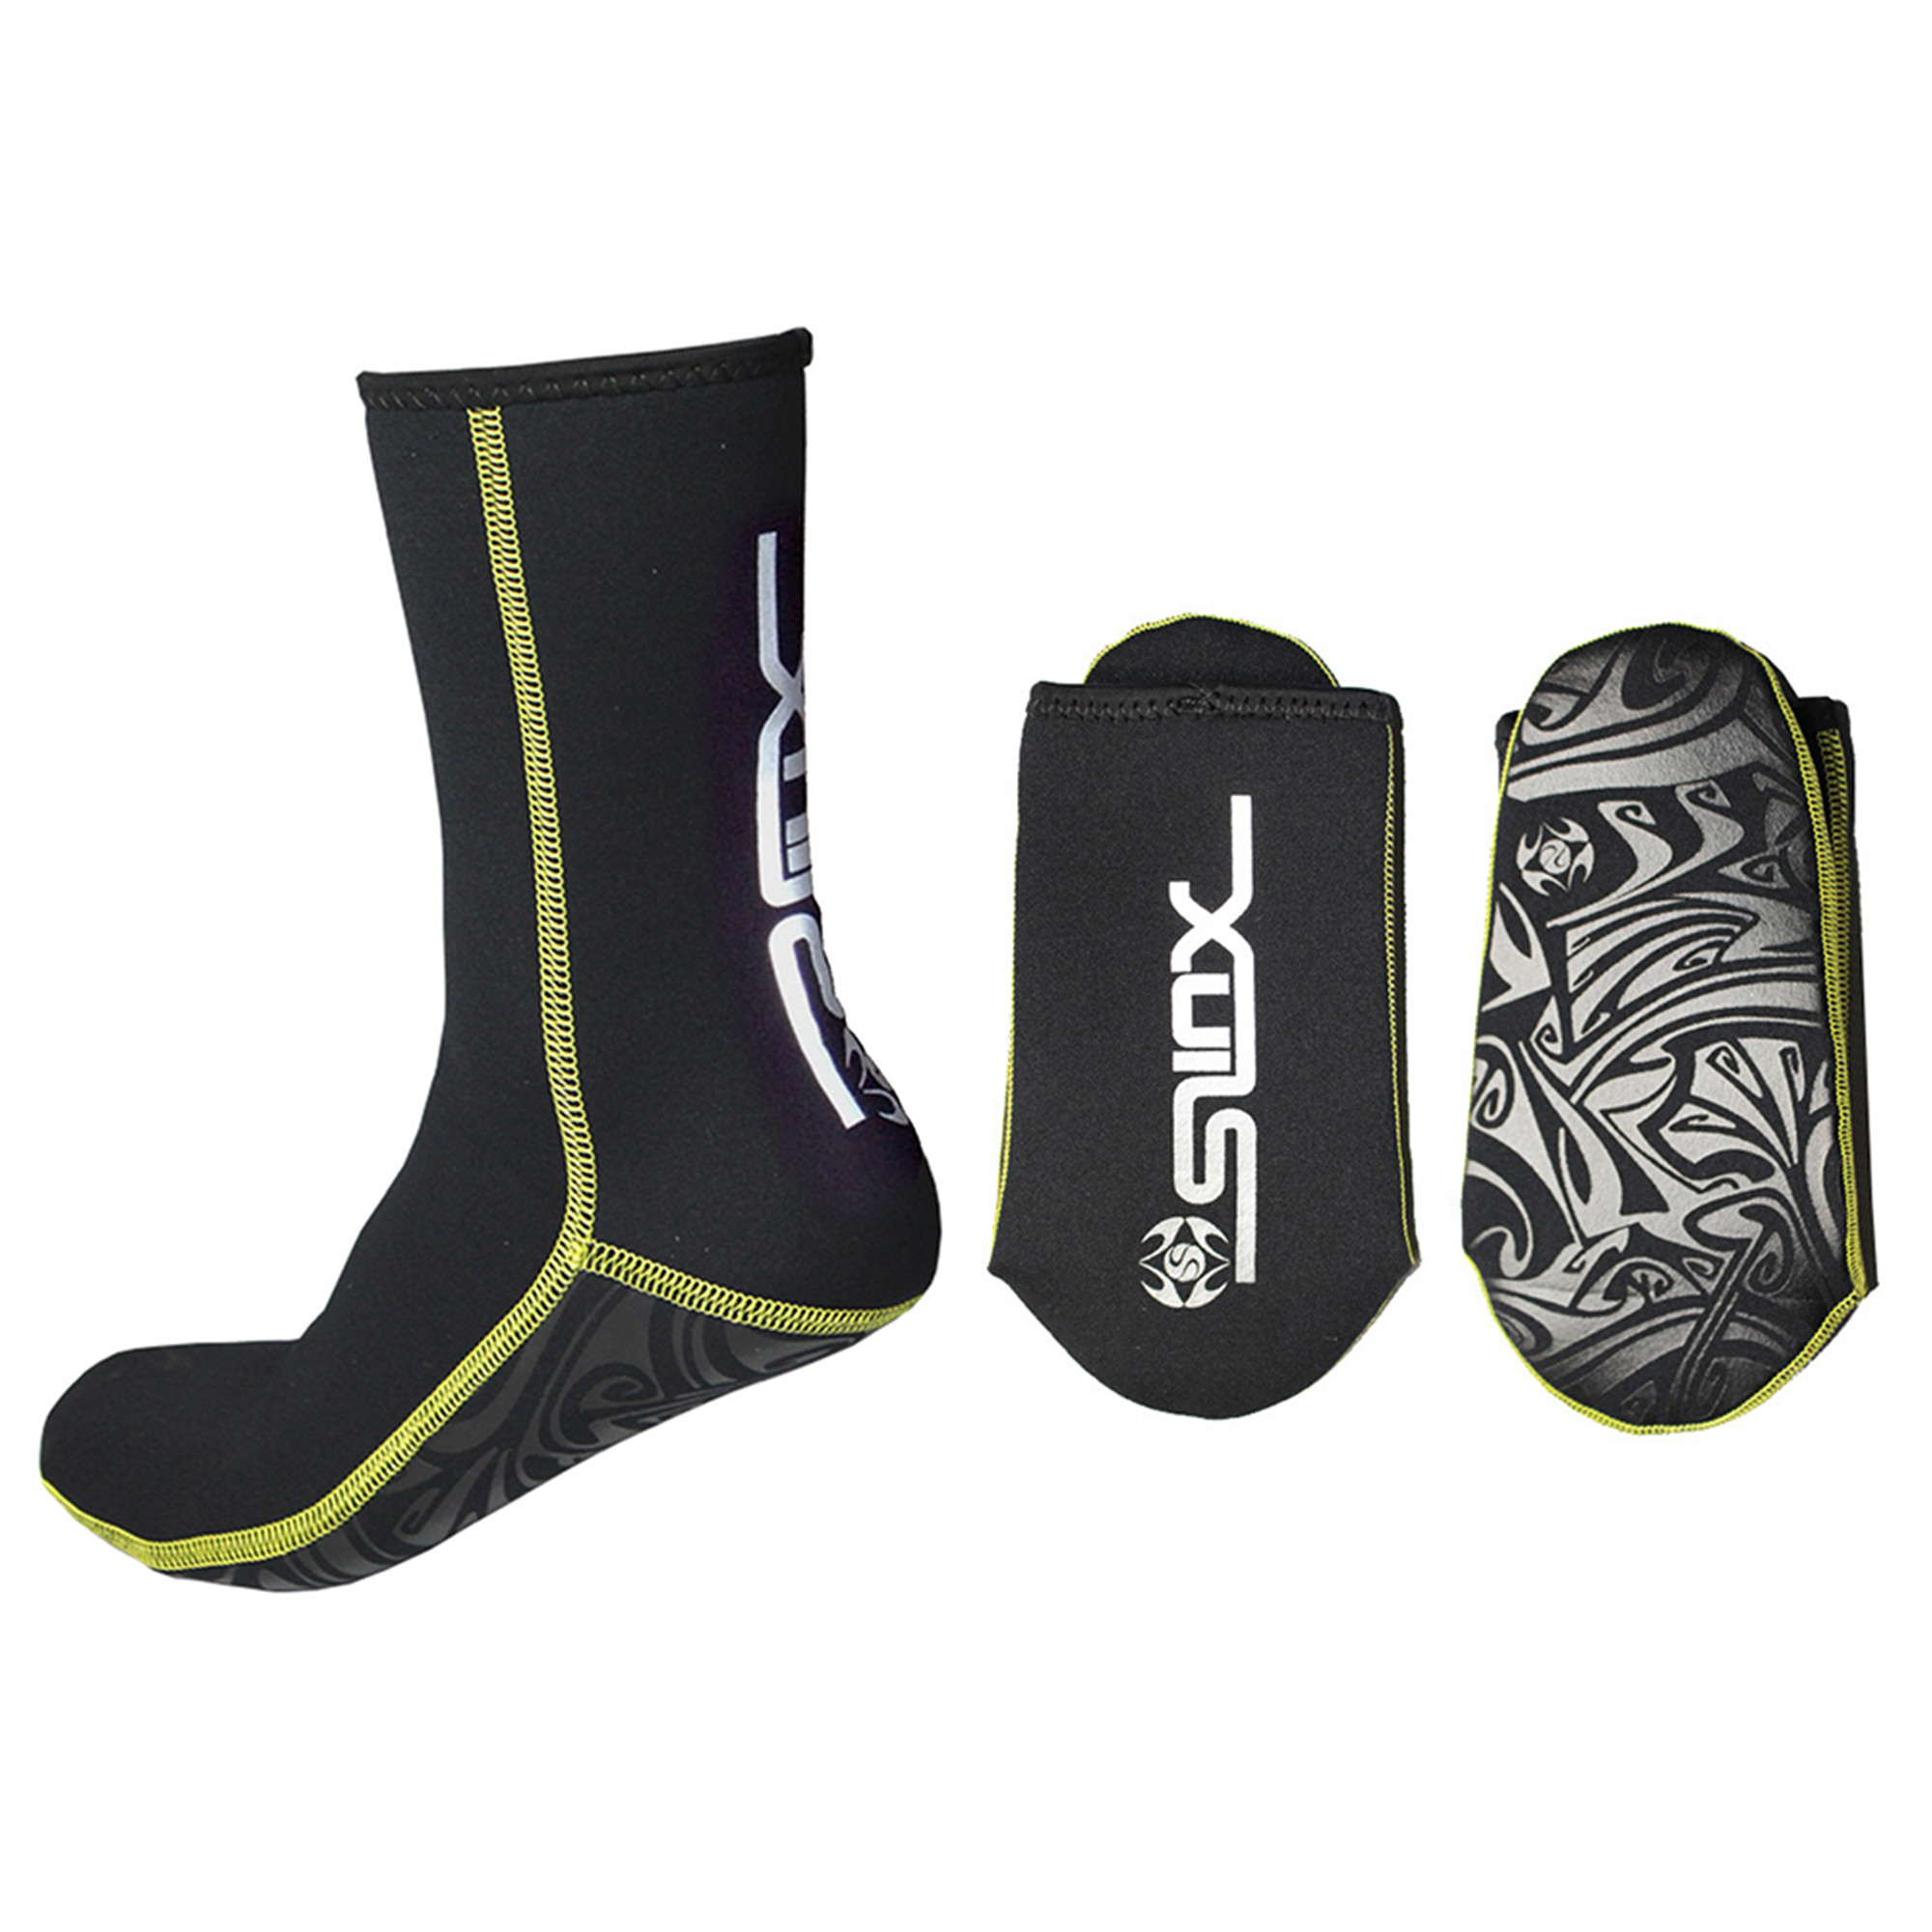 Details about  /Wetsuit 3mm Boots Diving Footwear Gloves//socks Neoprene Nylon Sporting